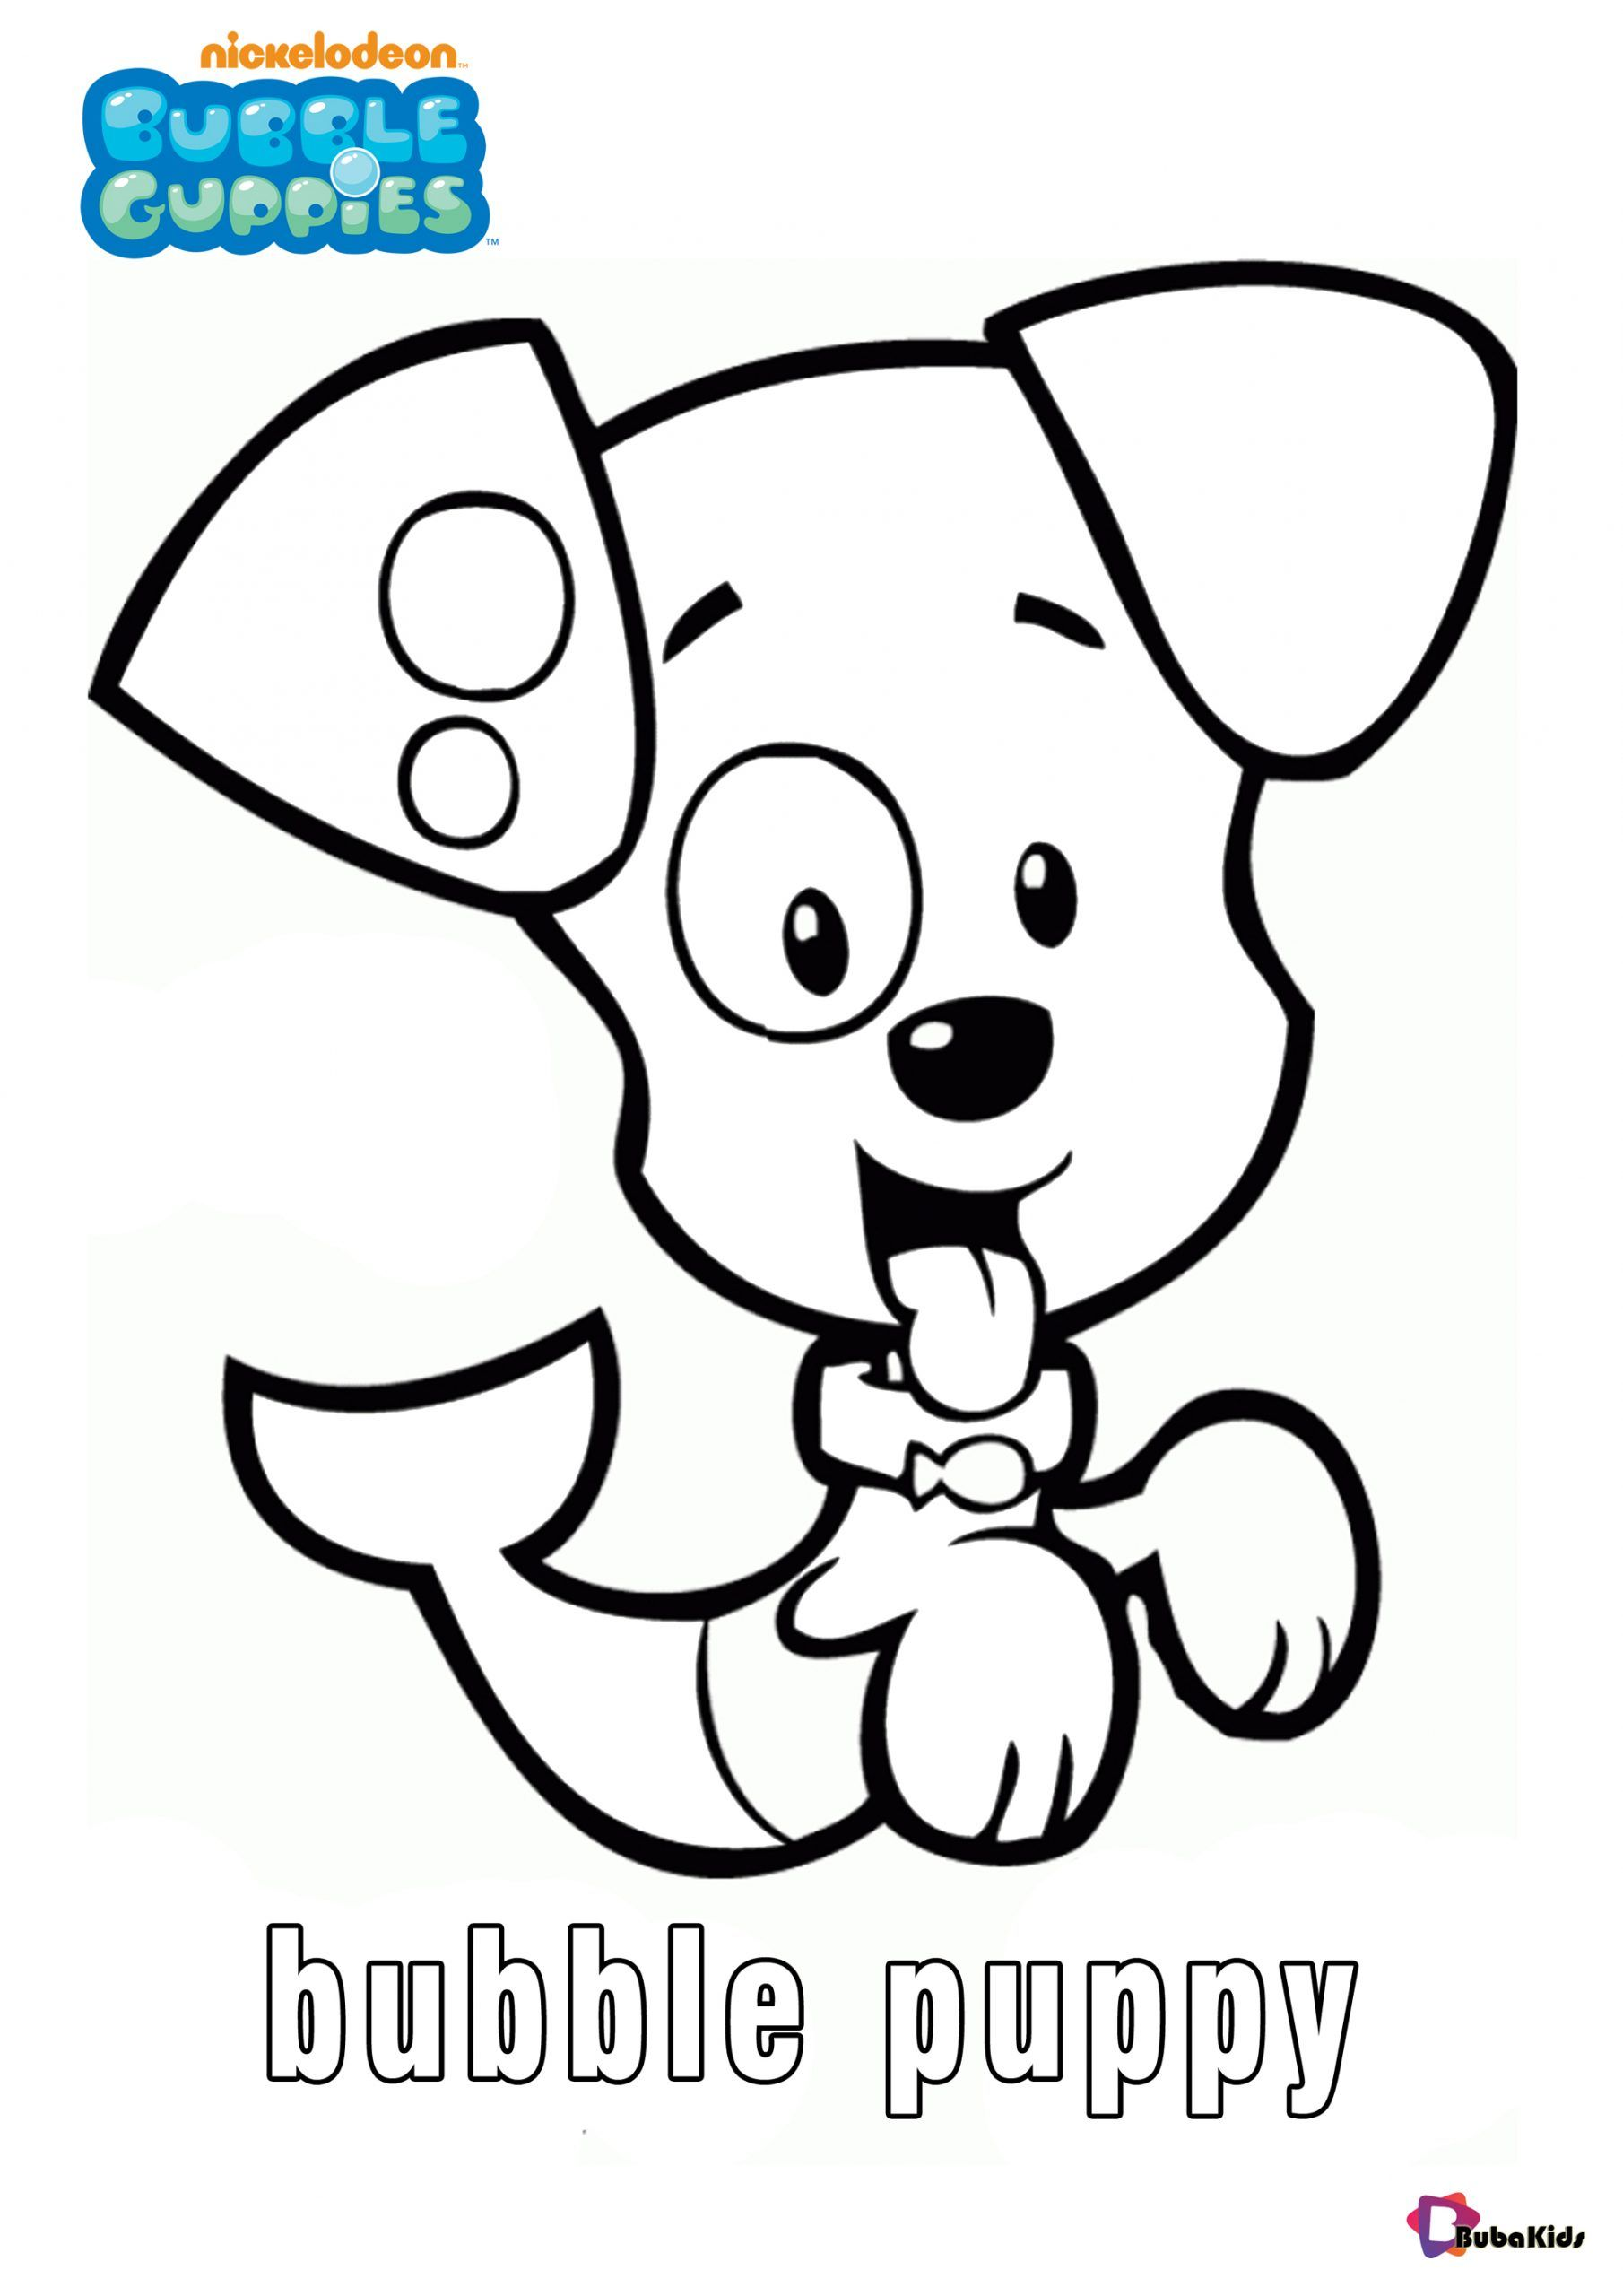 Printable Bubble Guppies Character Coloring Pages Bubble Puppy Collection Of Cartoo Bubble Guppies Coloring Pages Cartoon Coloring Pages Kitty Coloring Pages